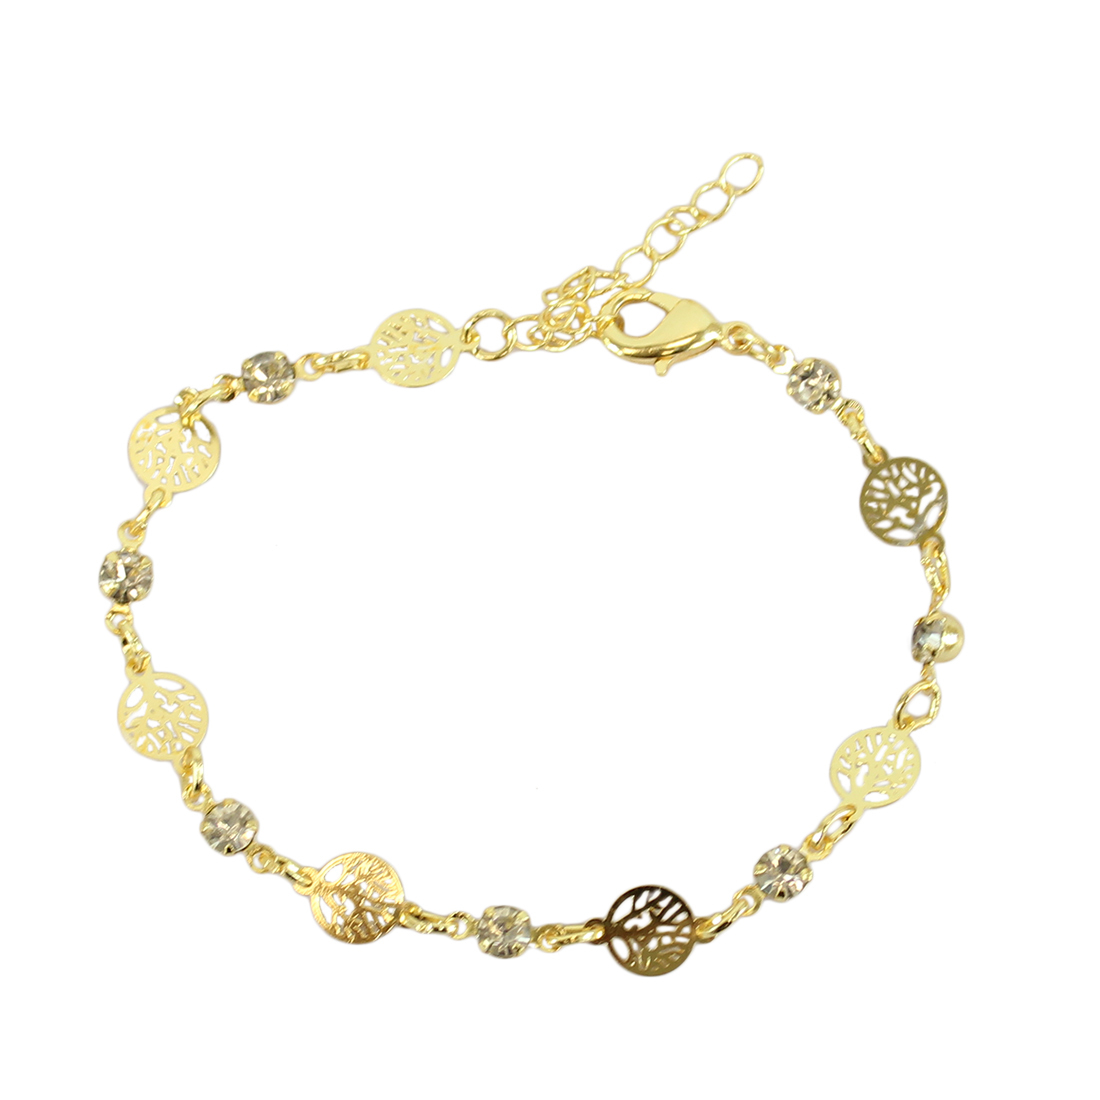 Chain bracelet with tree shapes and diamonds